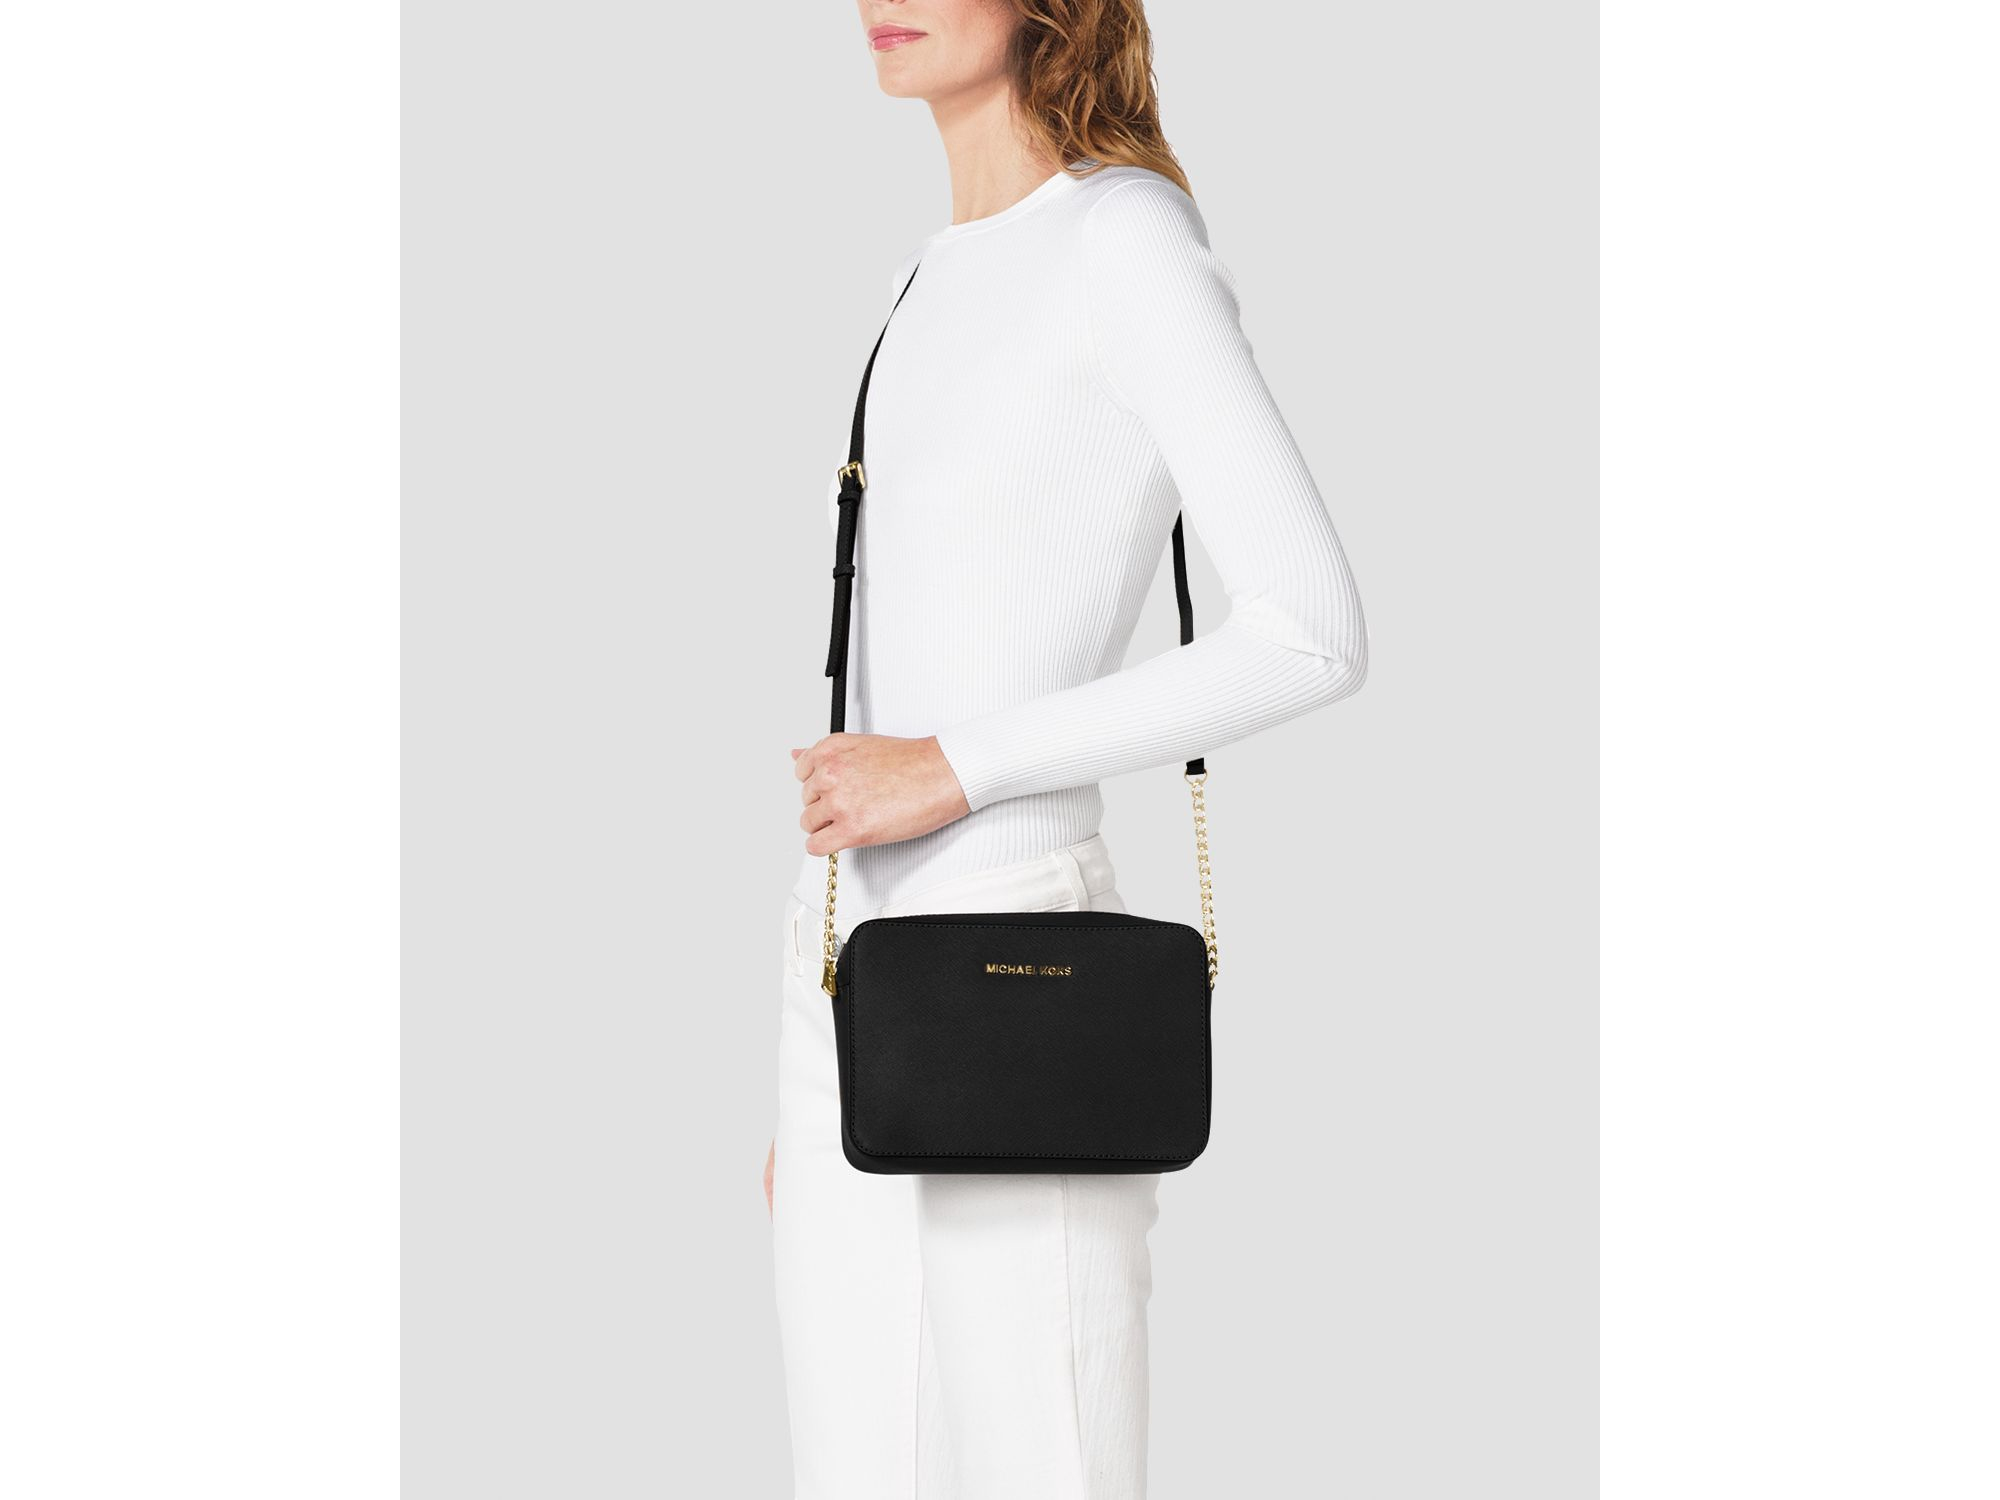 93017e21b942 Gallery. Previously sold at: Bloomingdale's · Women's Michael By Michael  Kors Jet Set